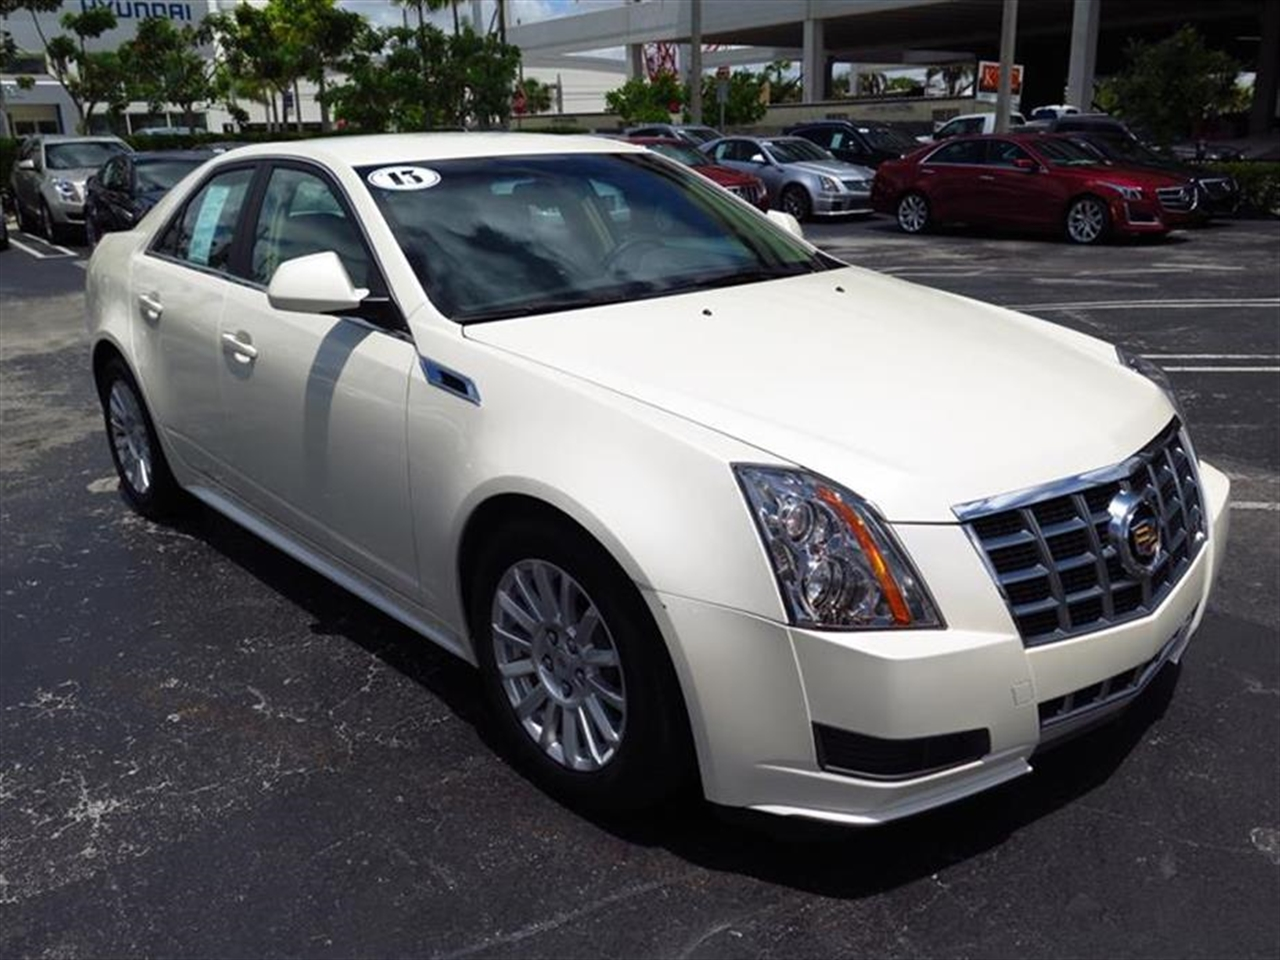 2013 CADILLAC CTS 4dr Sdn 30L Luxury RWD 11735 miles Armrest front center rear center with dual